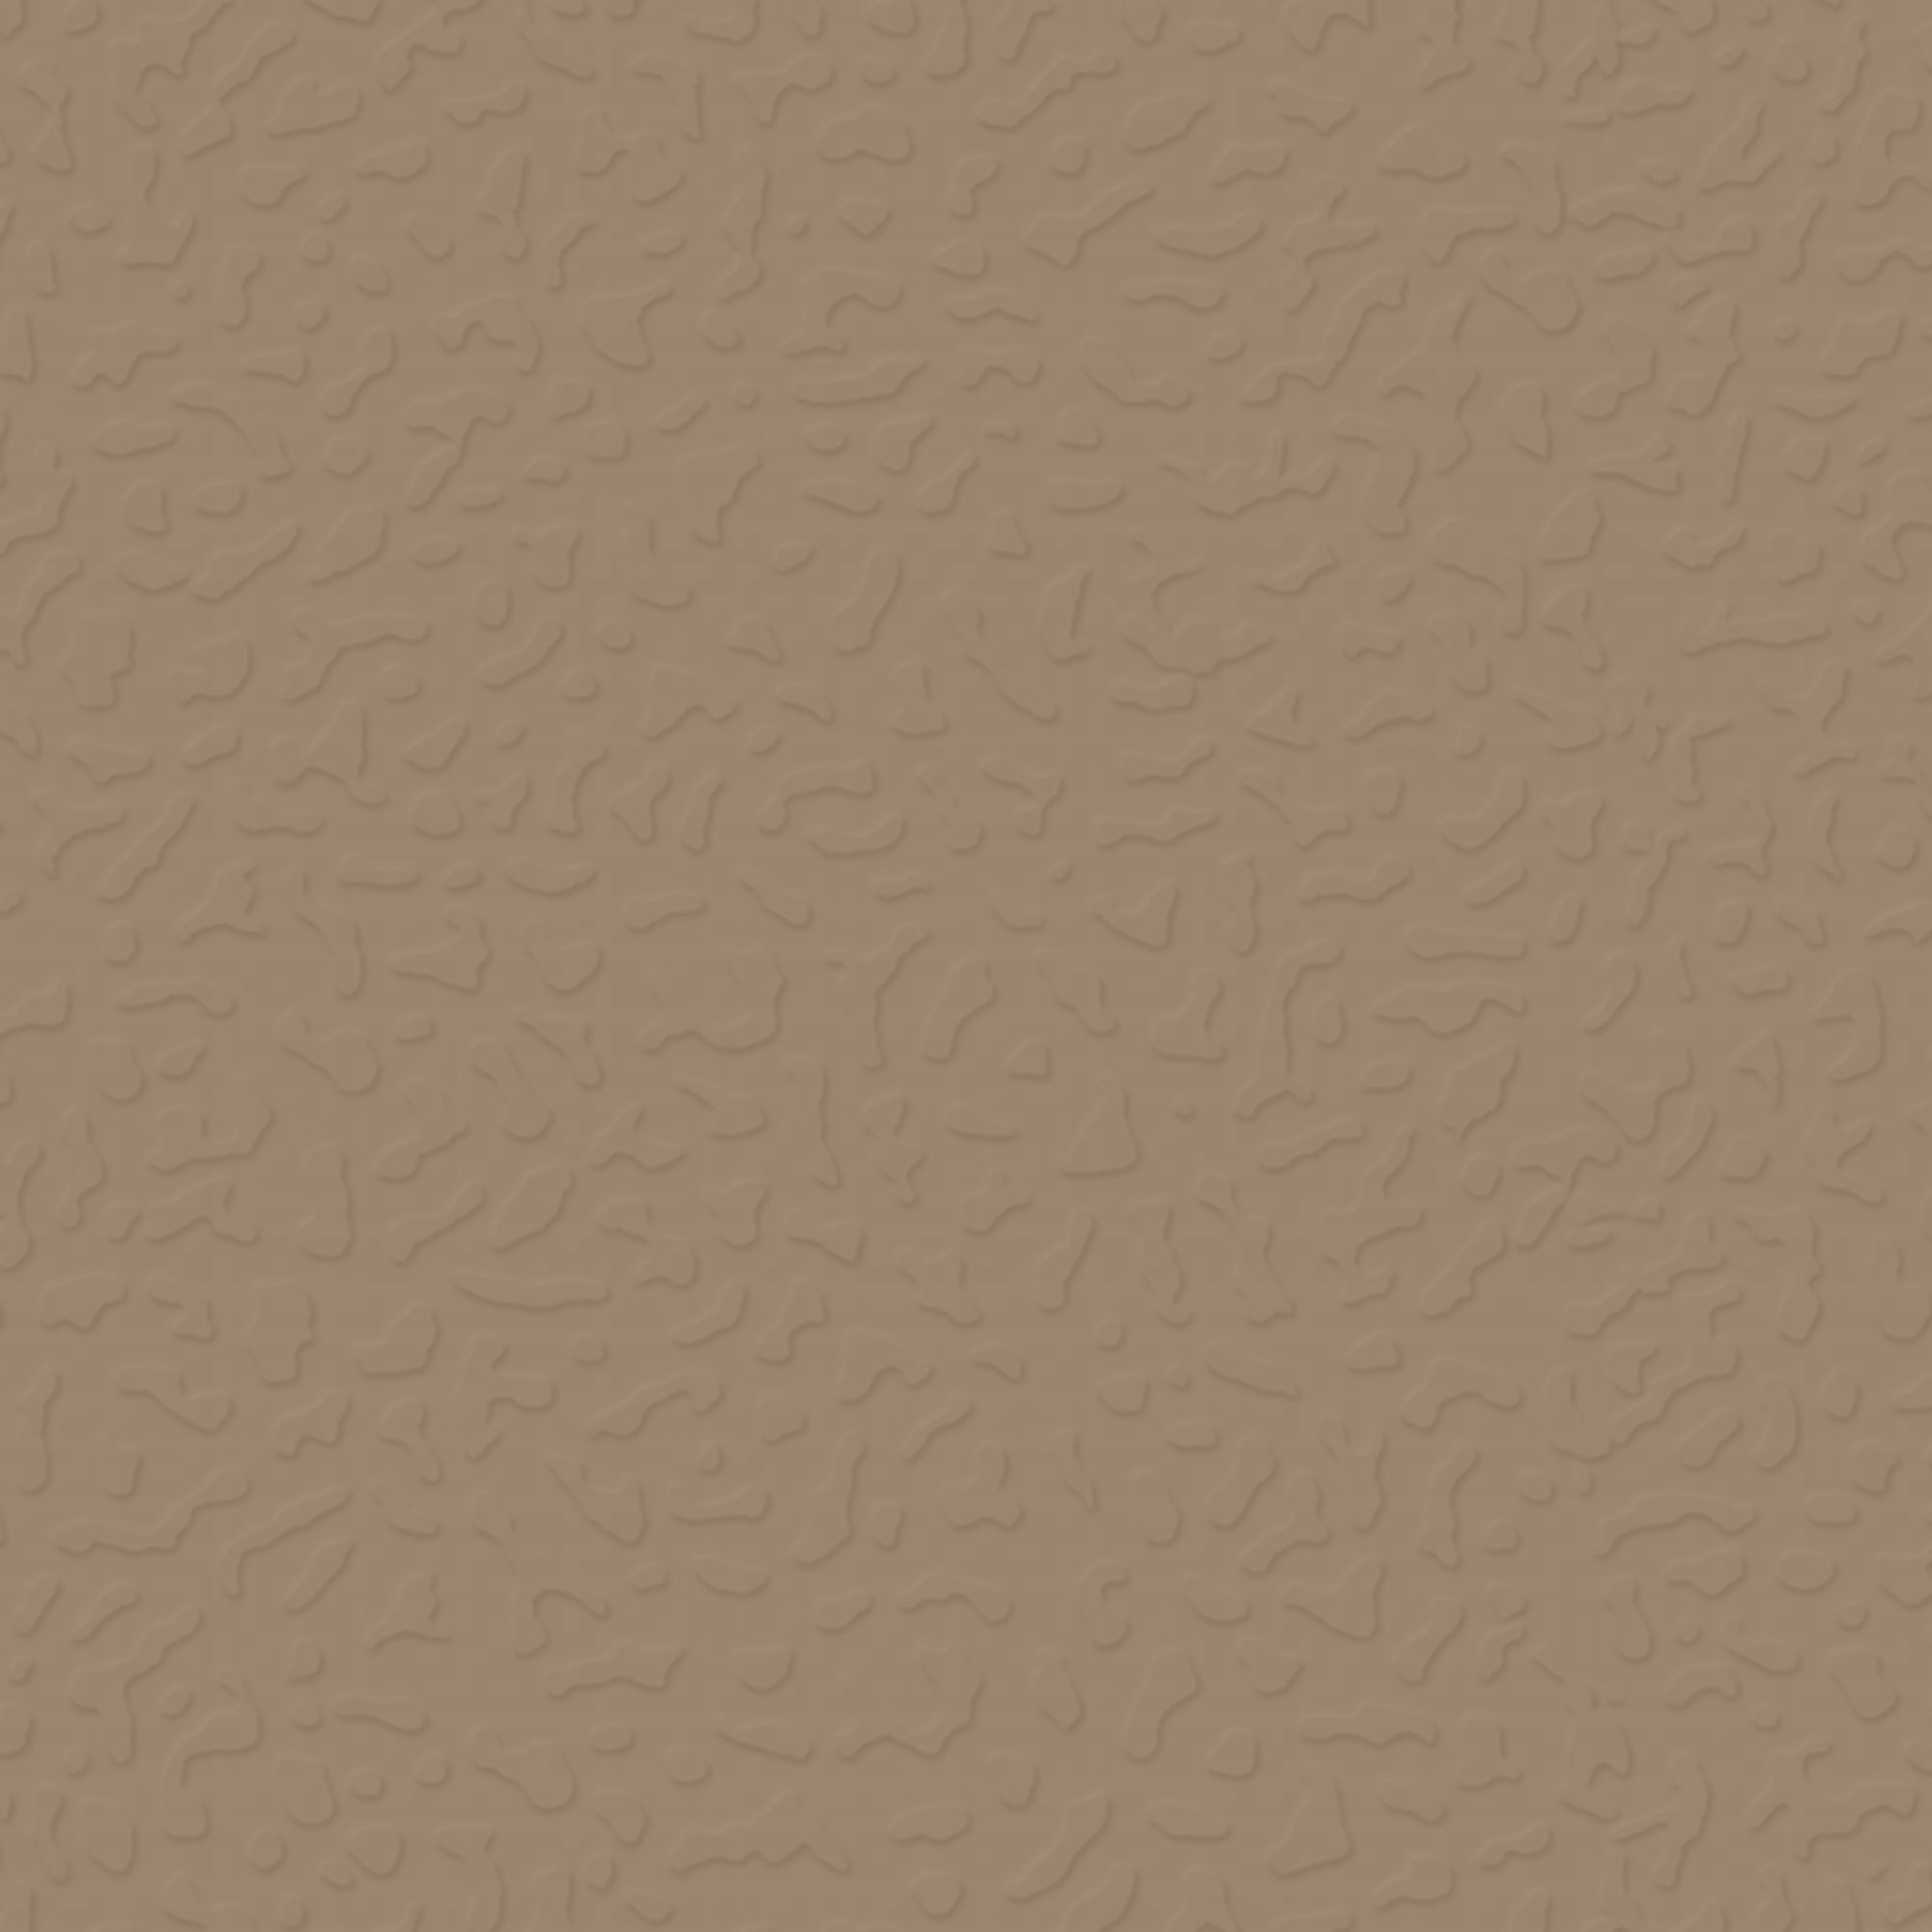 Roppe Rubber Tile 900 - Textured Design (993) Buckskin LB996130